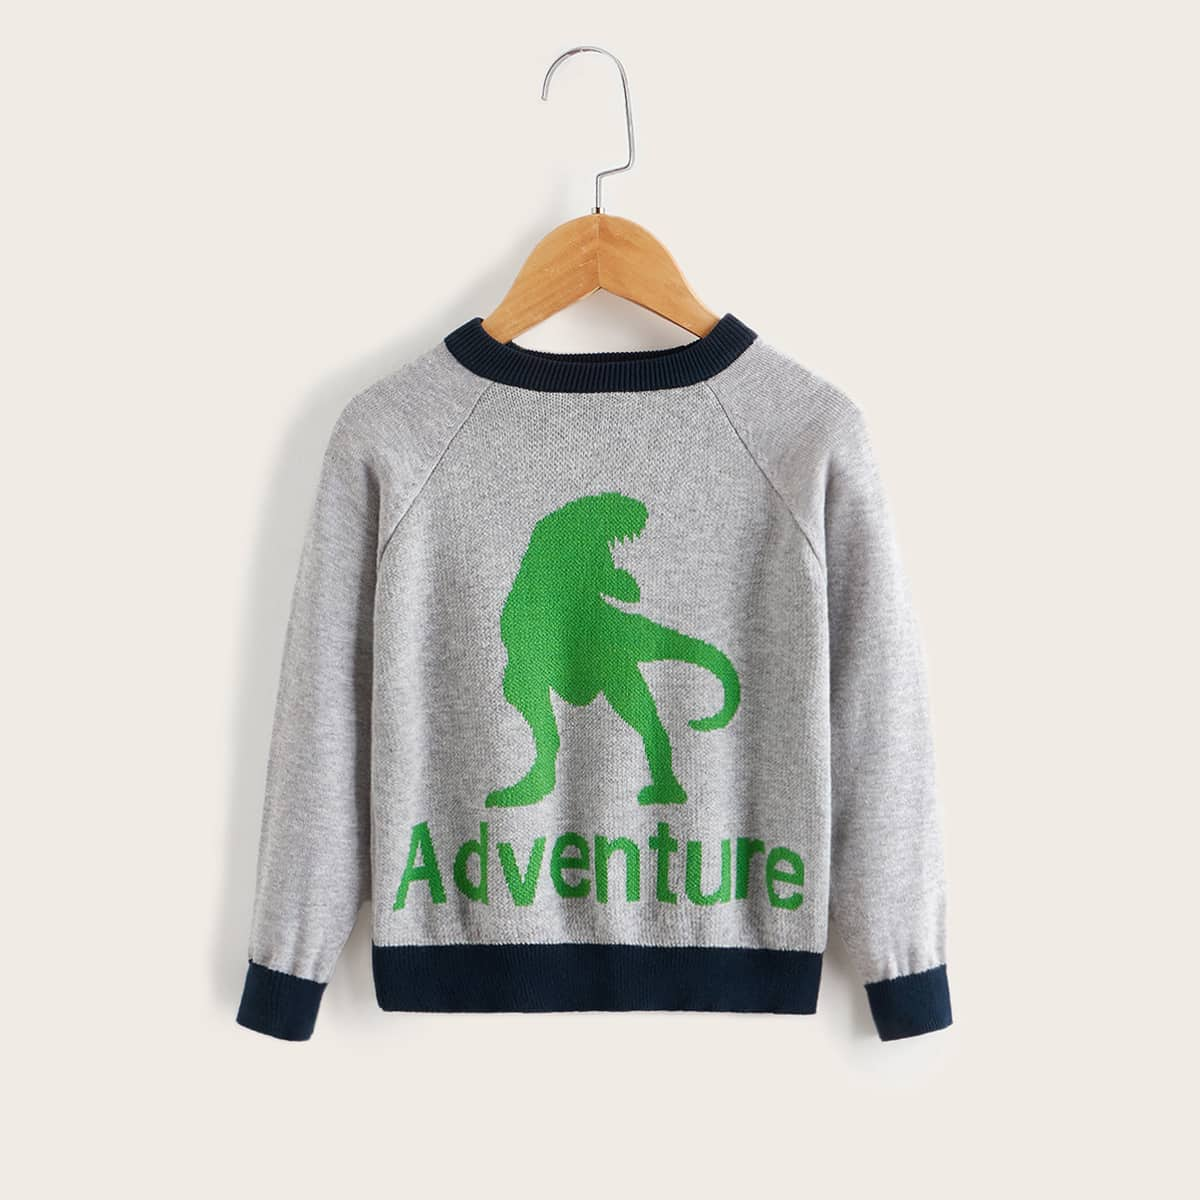 Toddler Boys Embroidery Letter Contrast Elbow Patch Cardigan